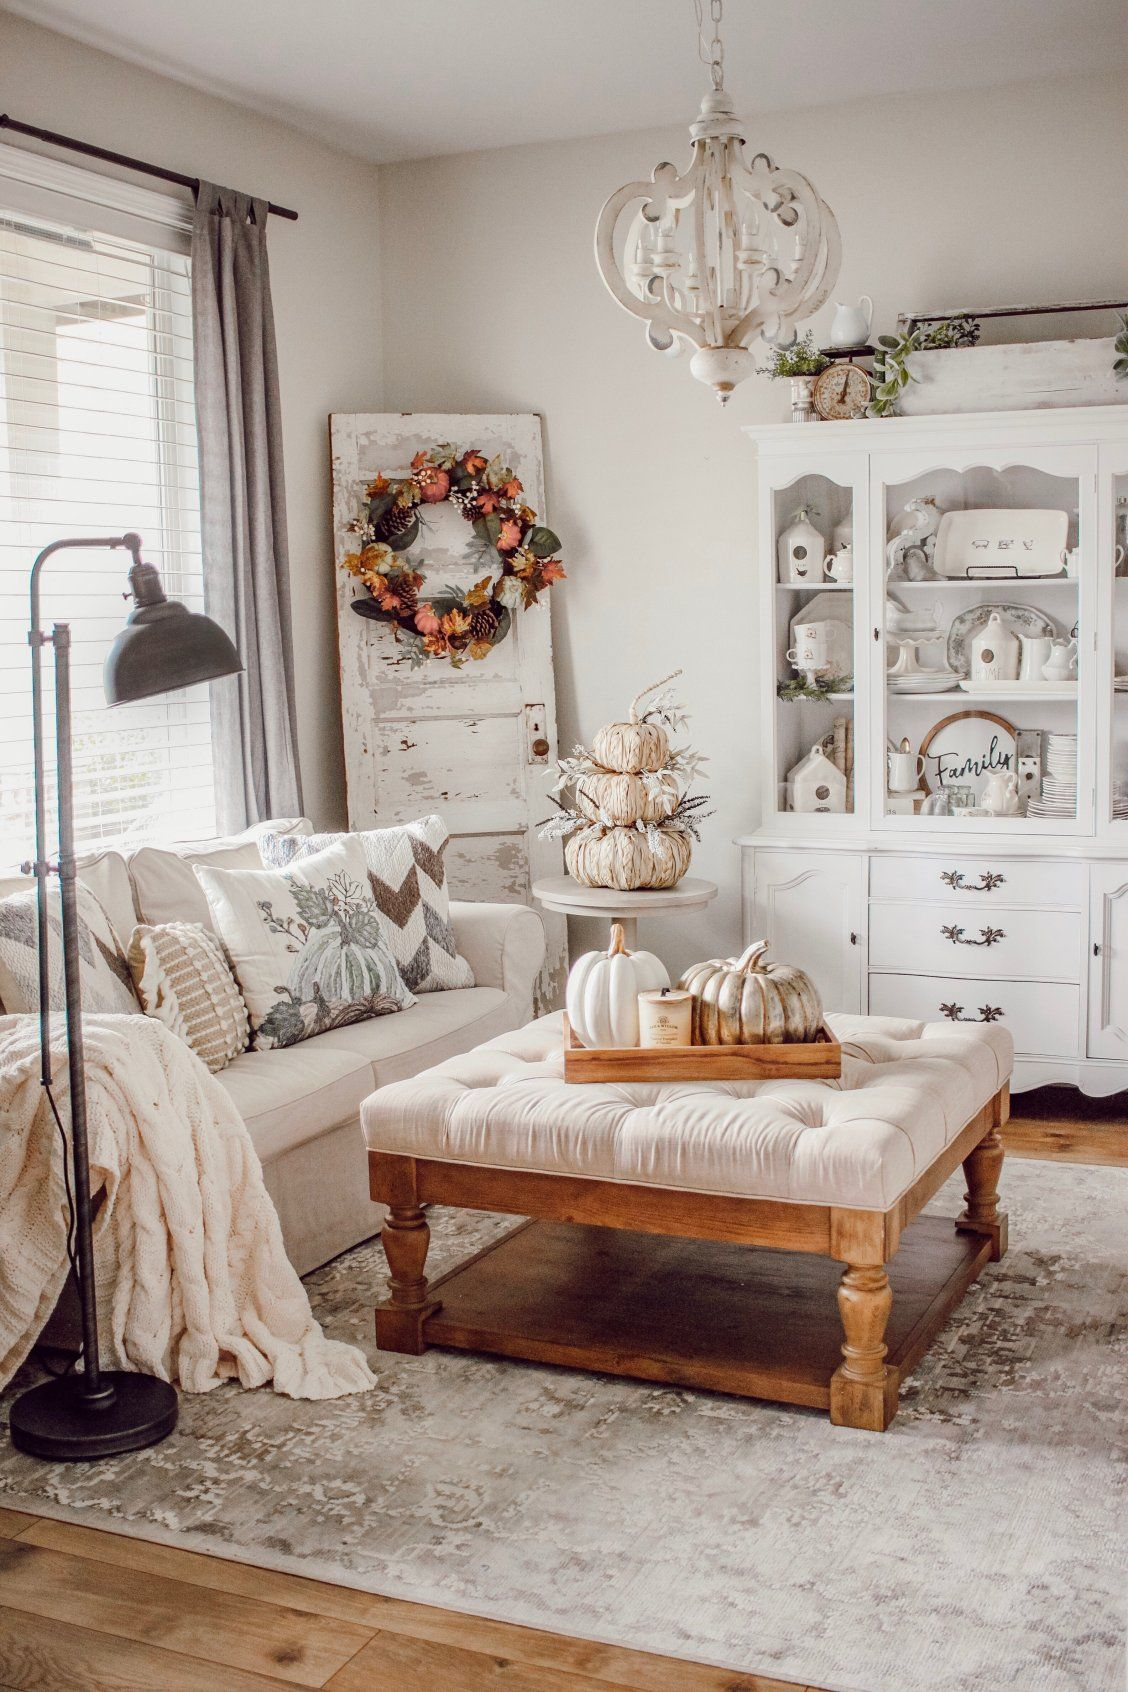 A Cozy Cottage Fall Refresh With Bed Bath Beyond Rain And Pine Fall Home Decor Cozy Cottage Autumn Home